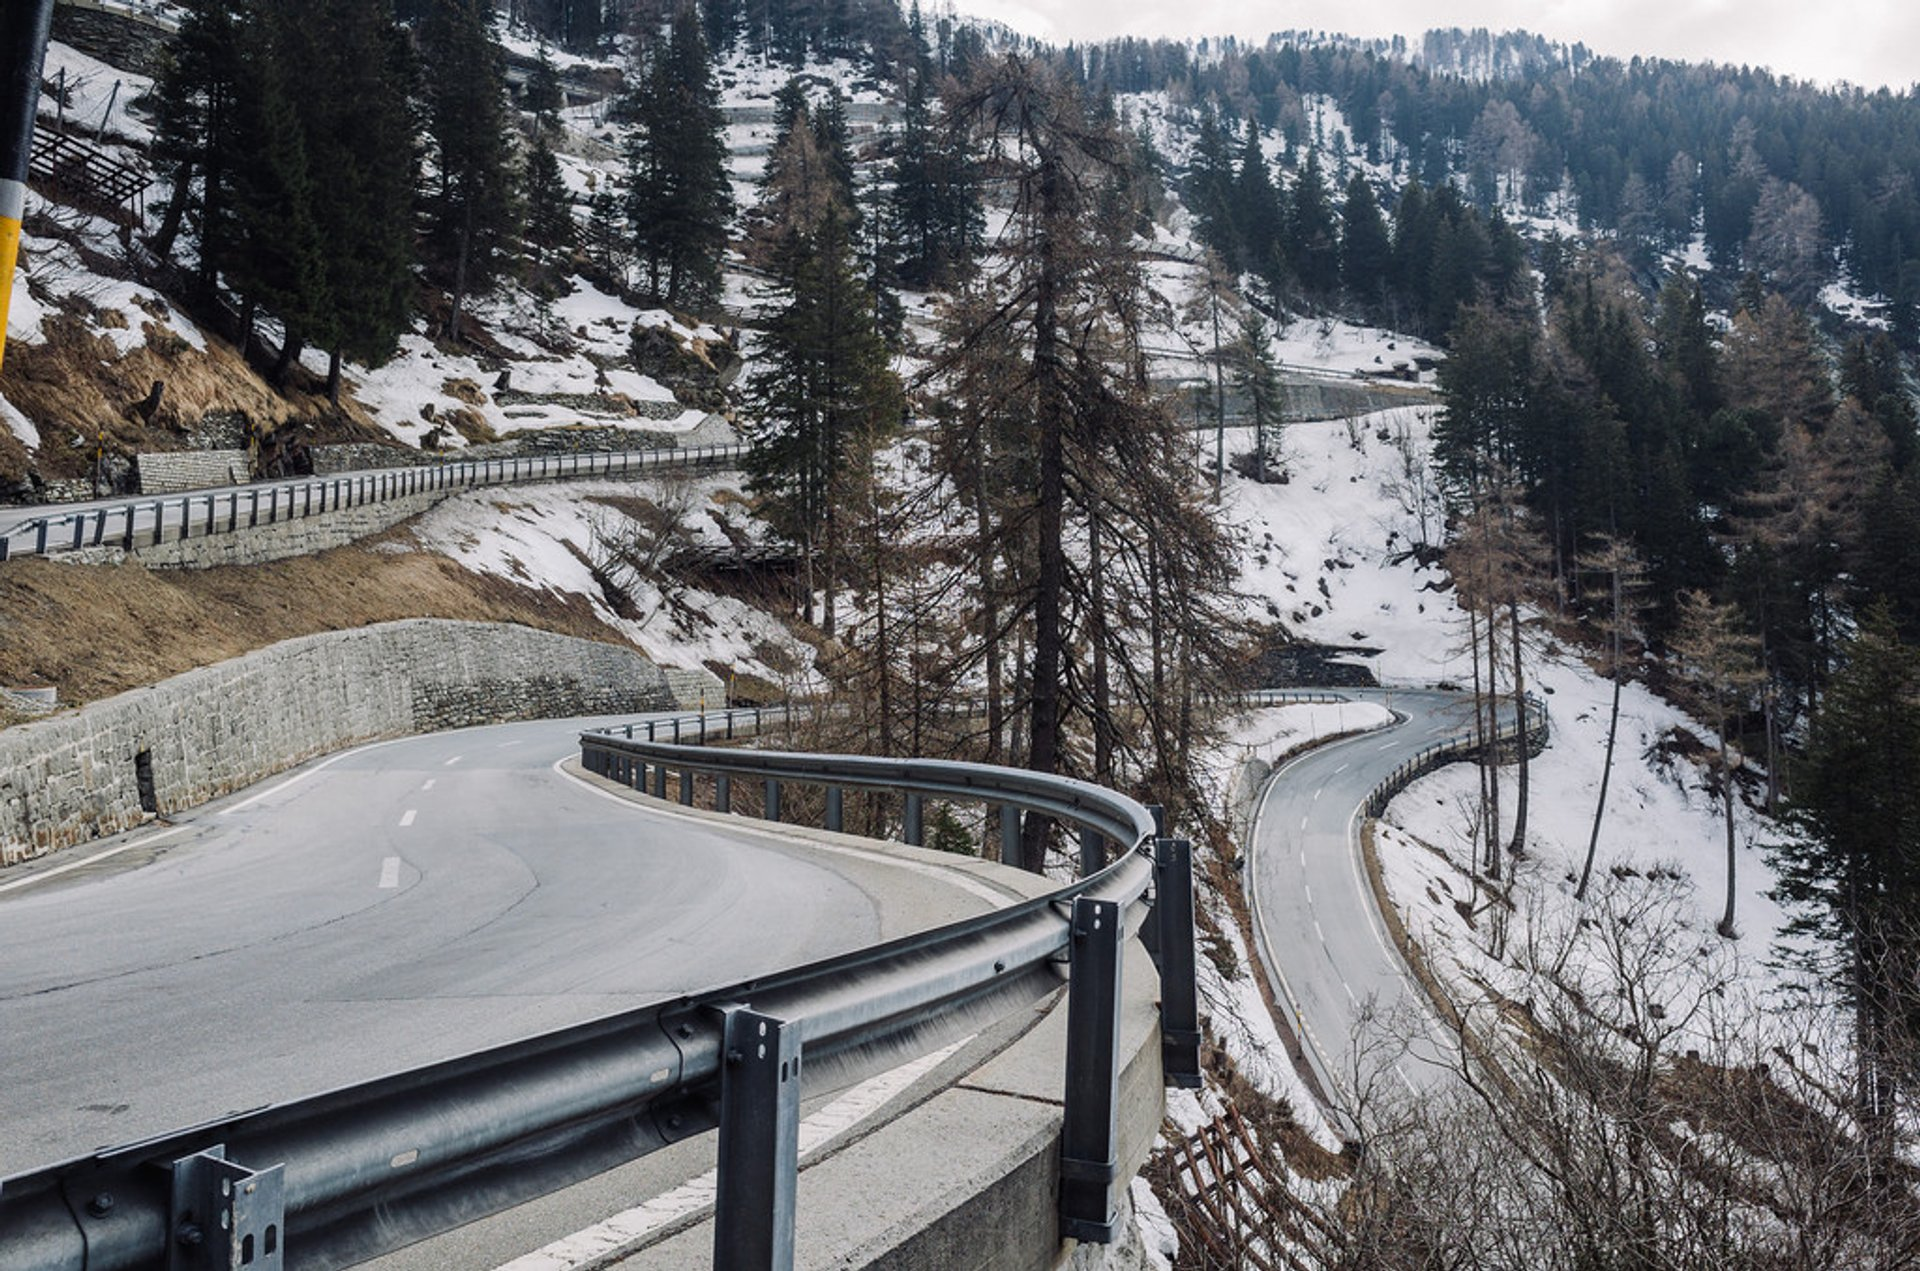 Maloja Pass in Switzerland 2019 - Best Time